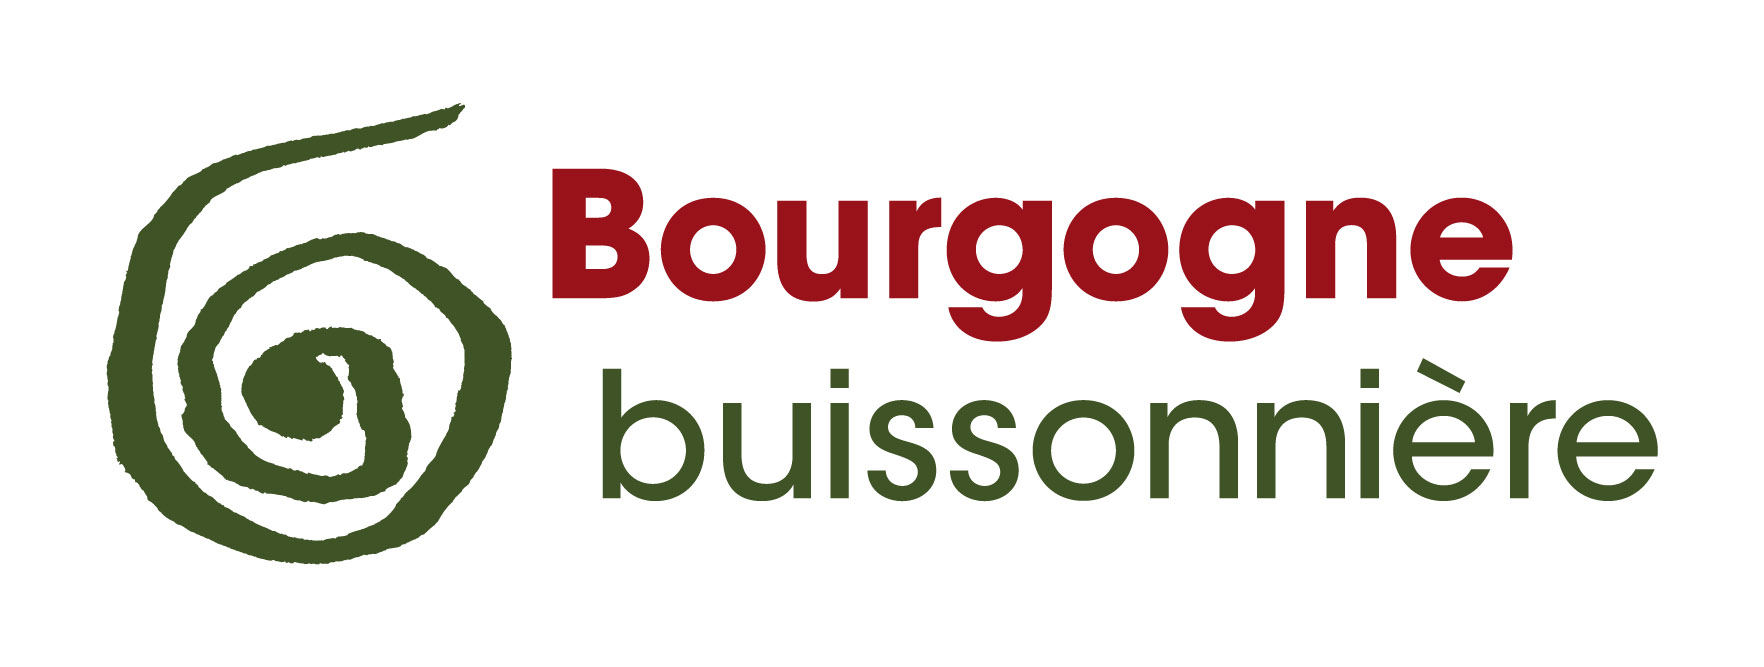 link Bourgogne buissonniere